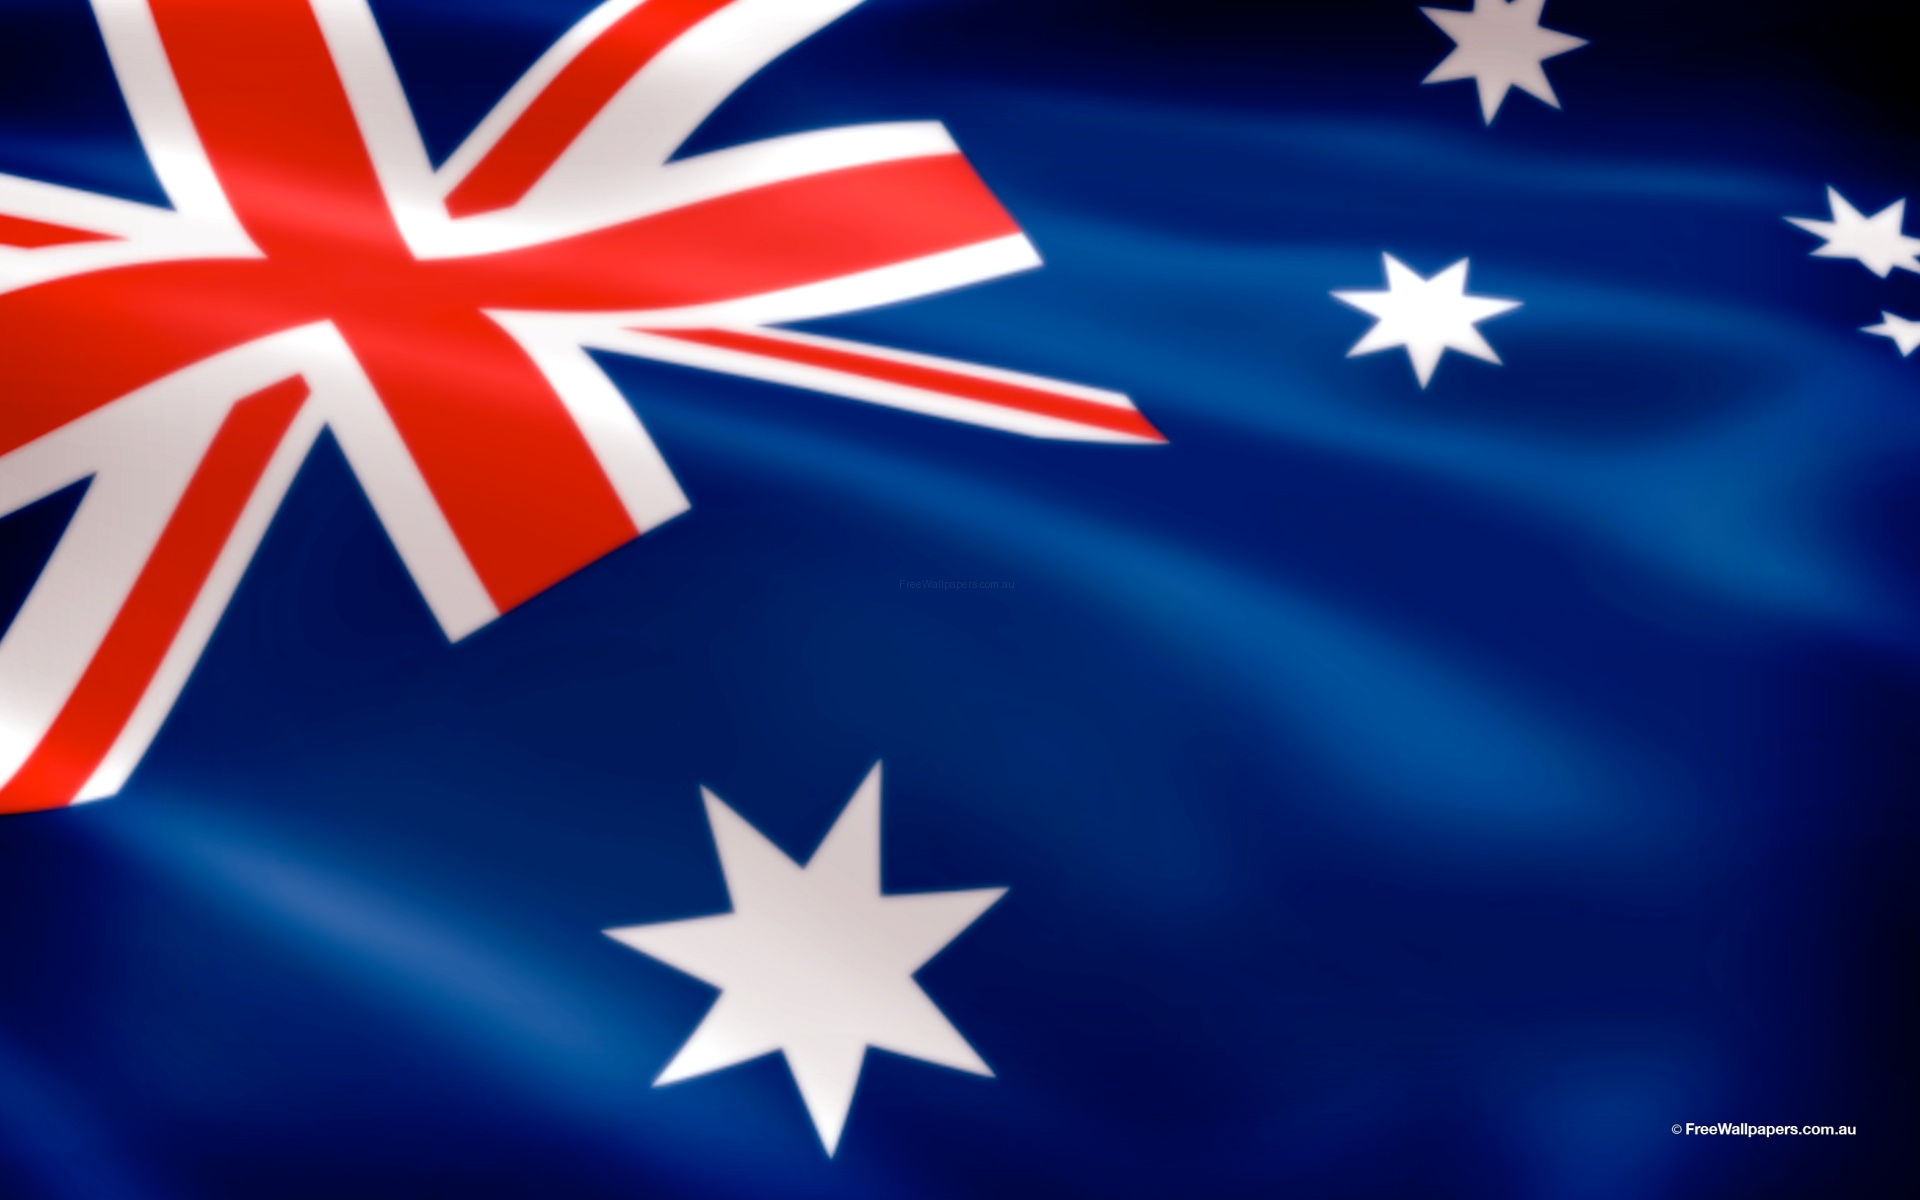 Australian Flag Desktop Wallpapers   ImgHD Browse and Download 1920x1200